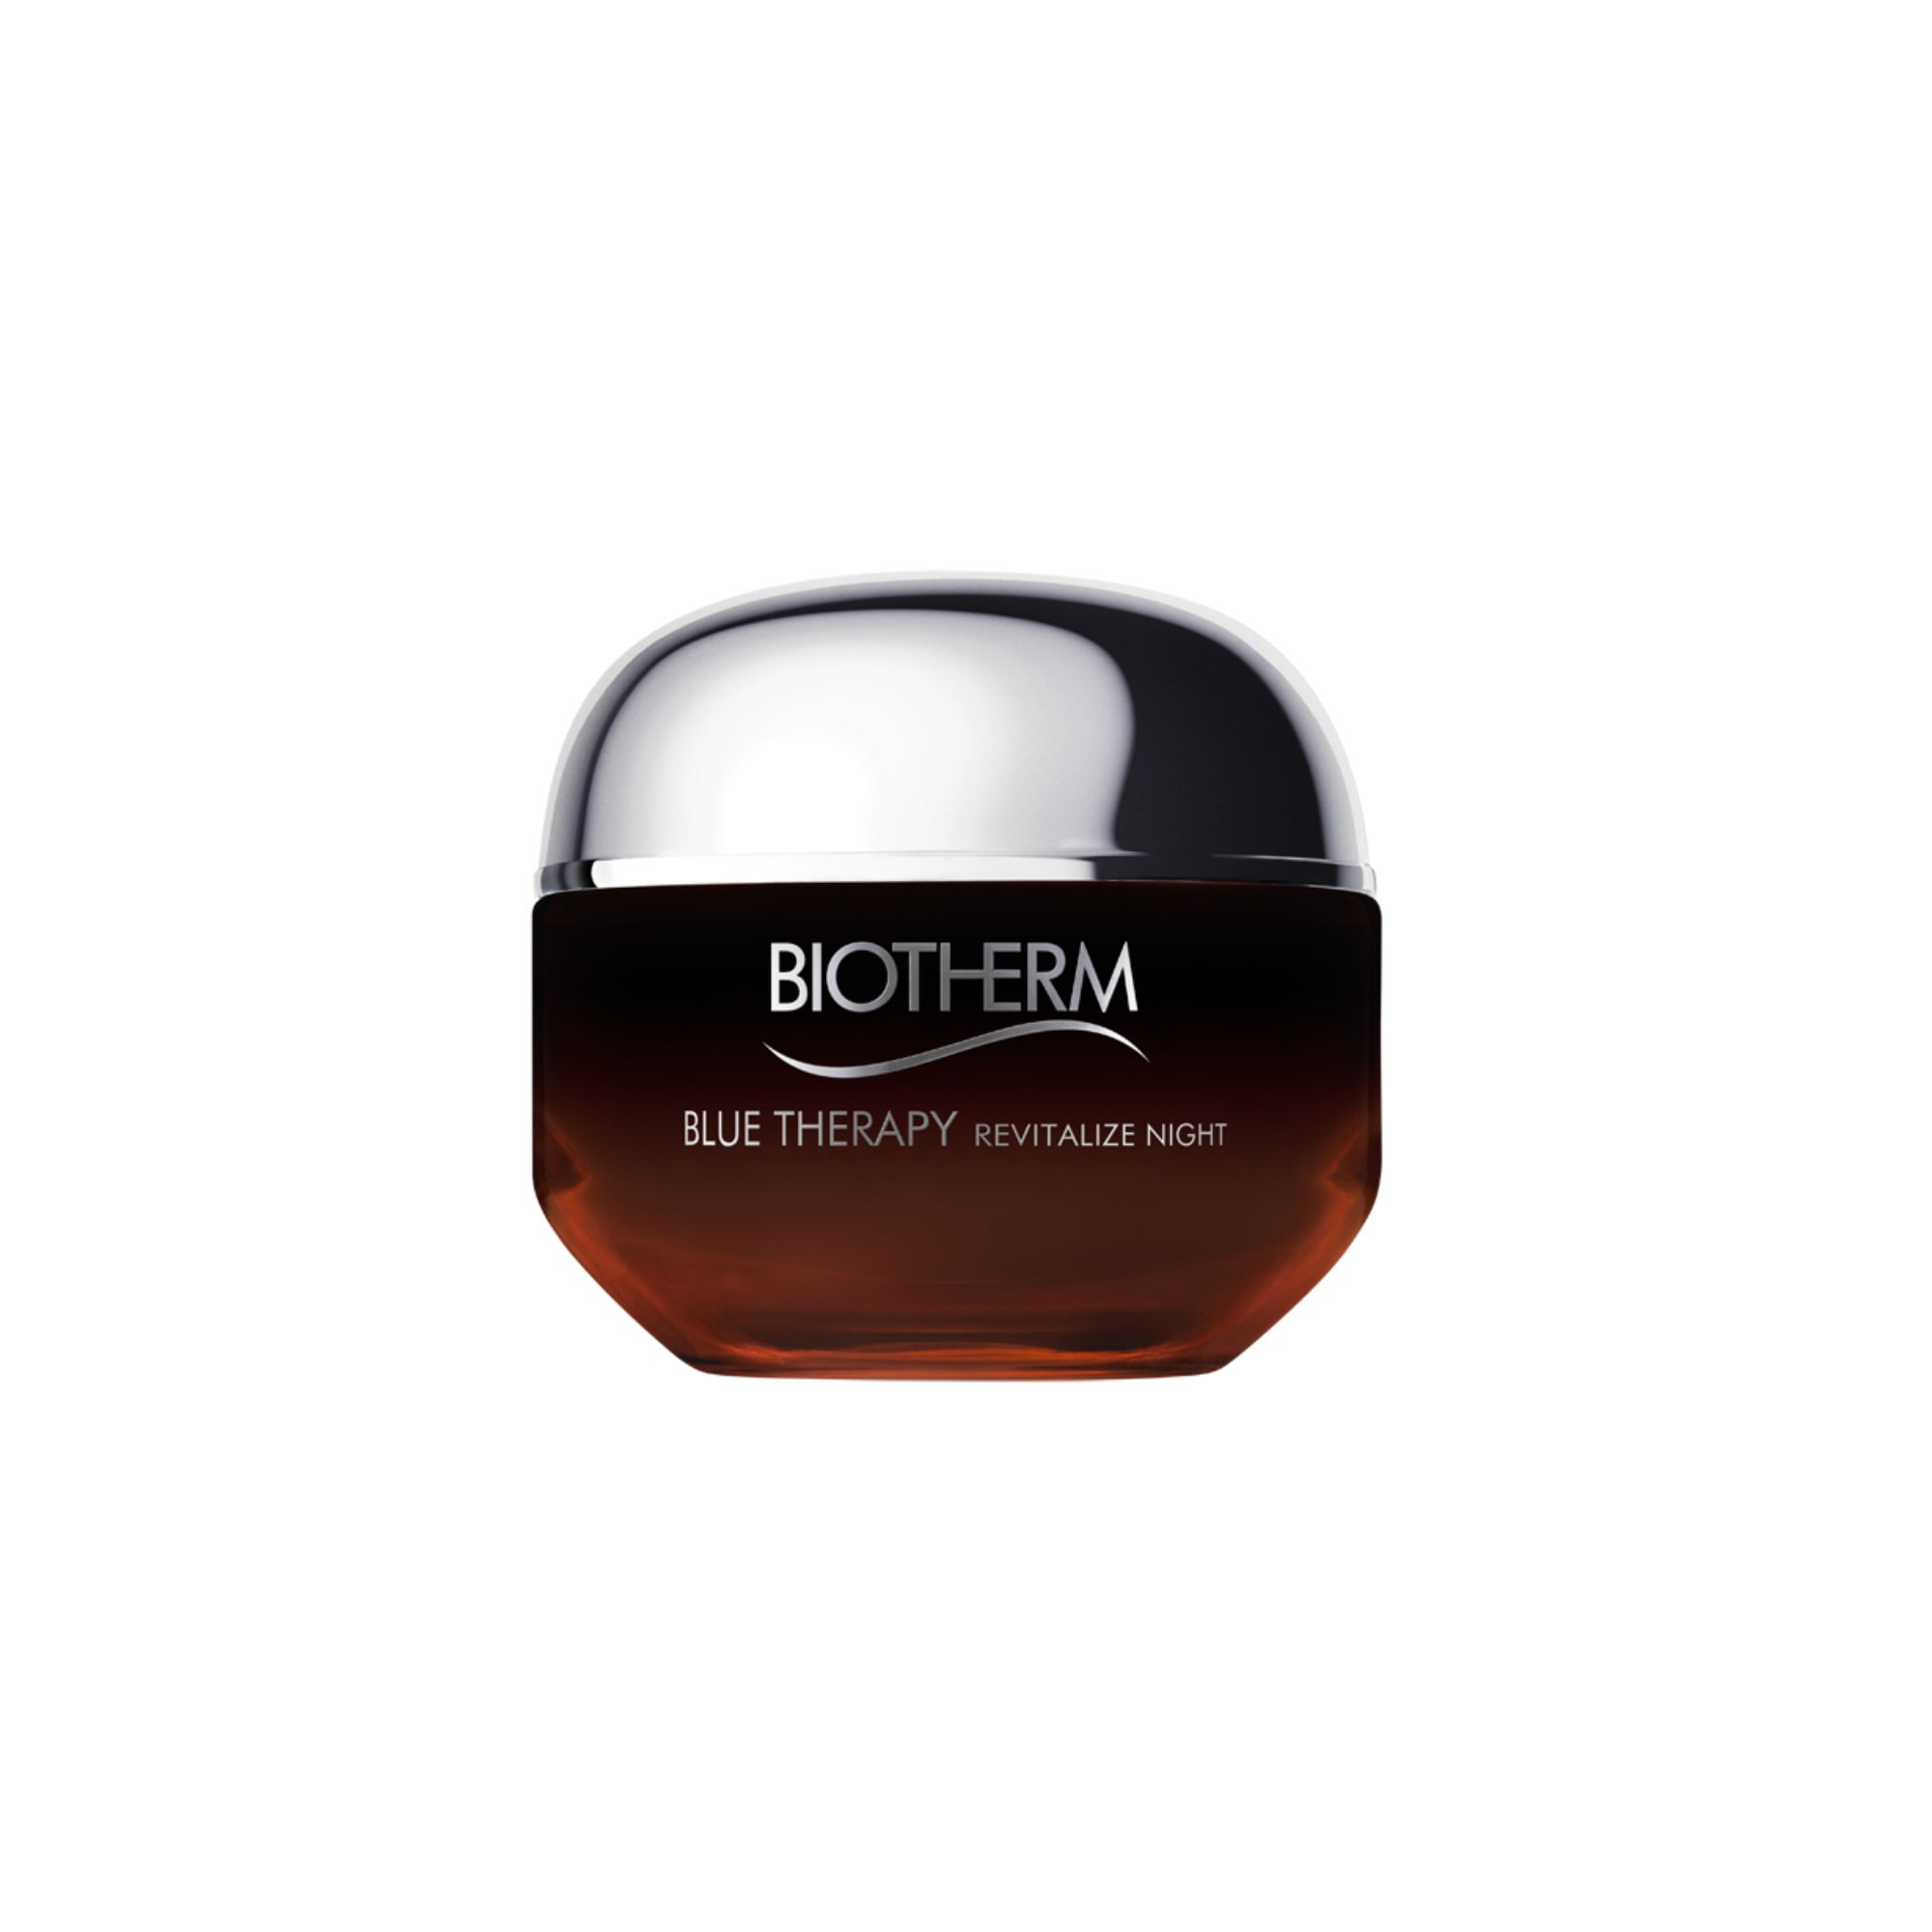 Biotherm revitalize night voide